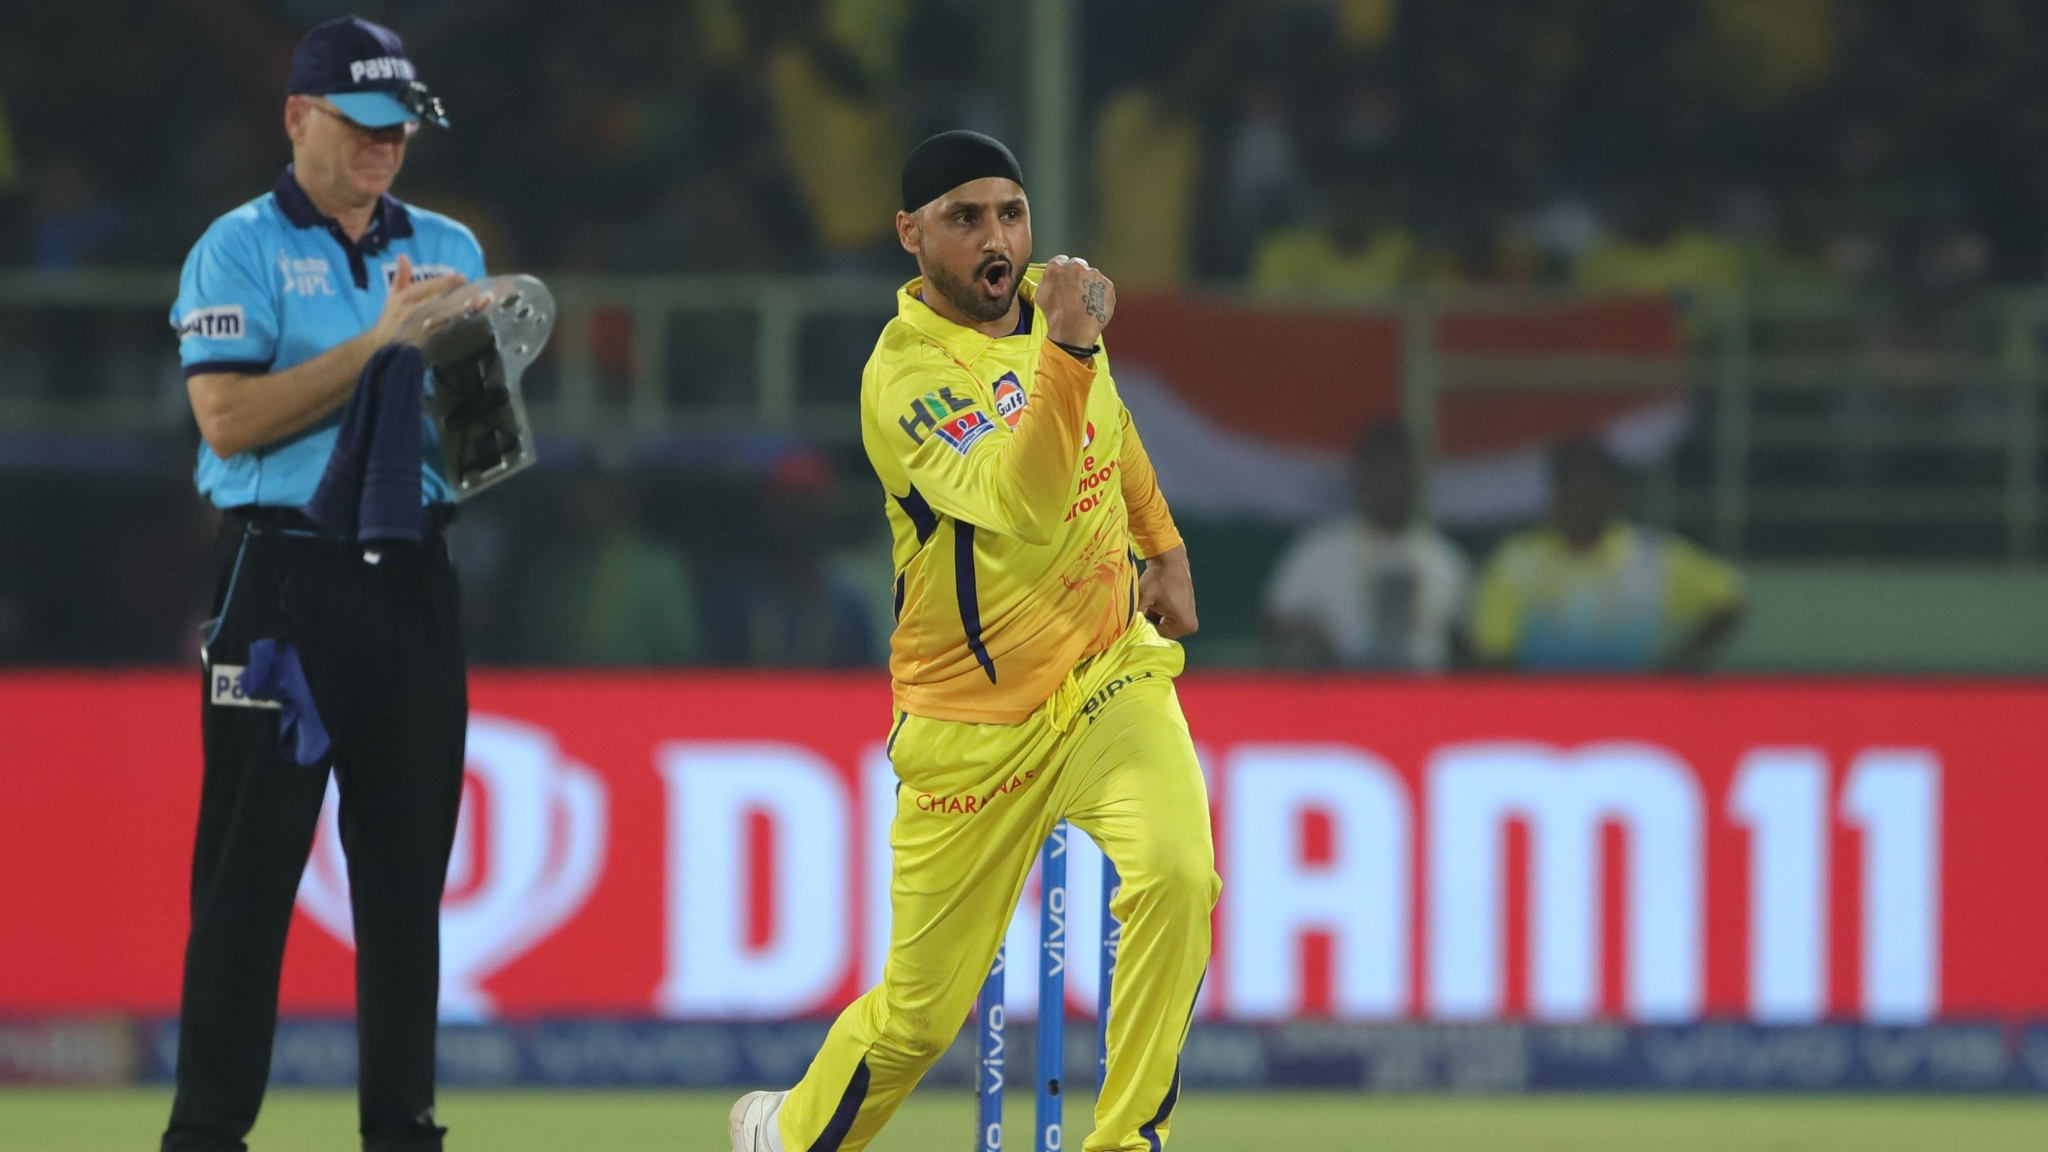 'Harbhajan Is Bowling With Lot Of Confidence': Brett Lee